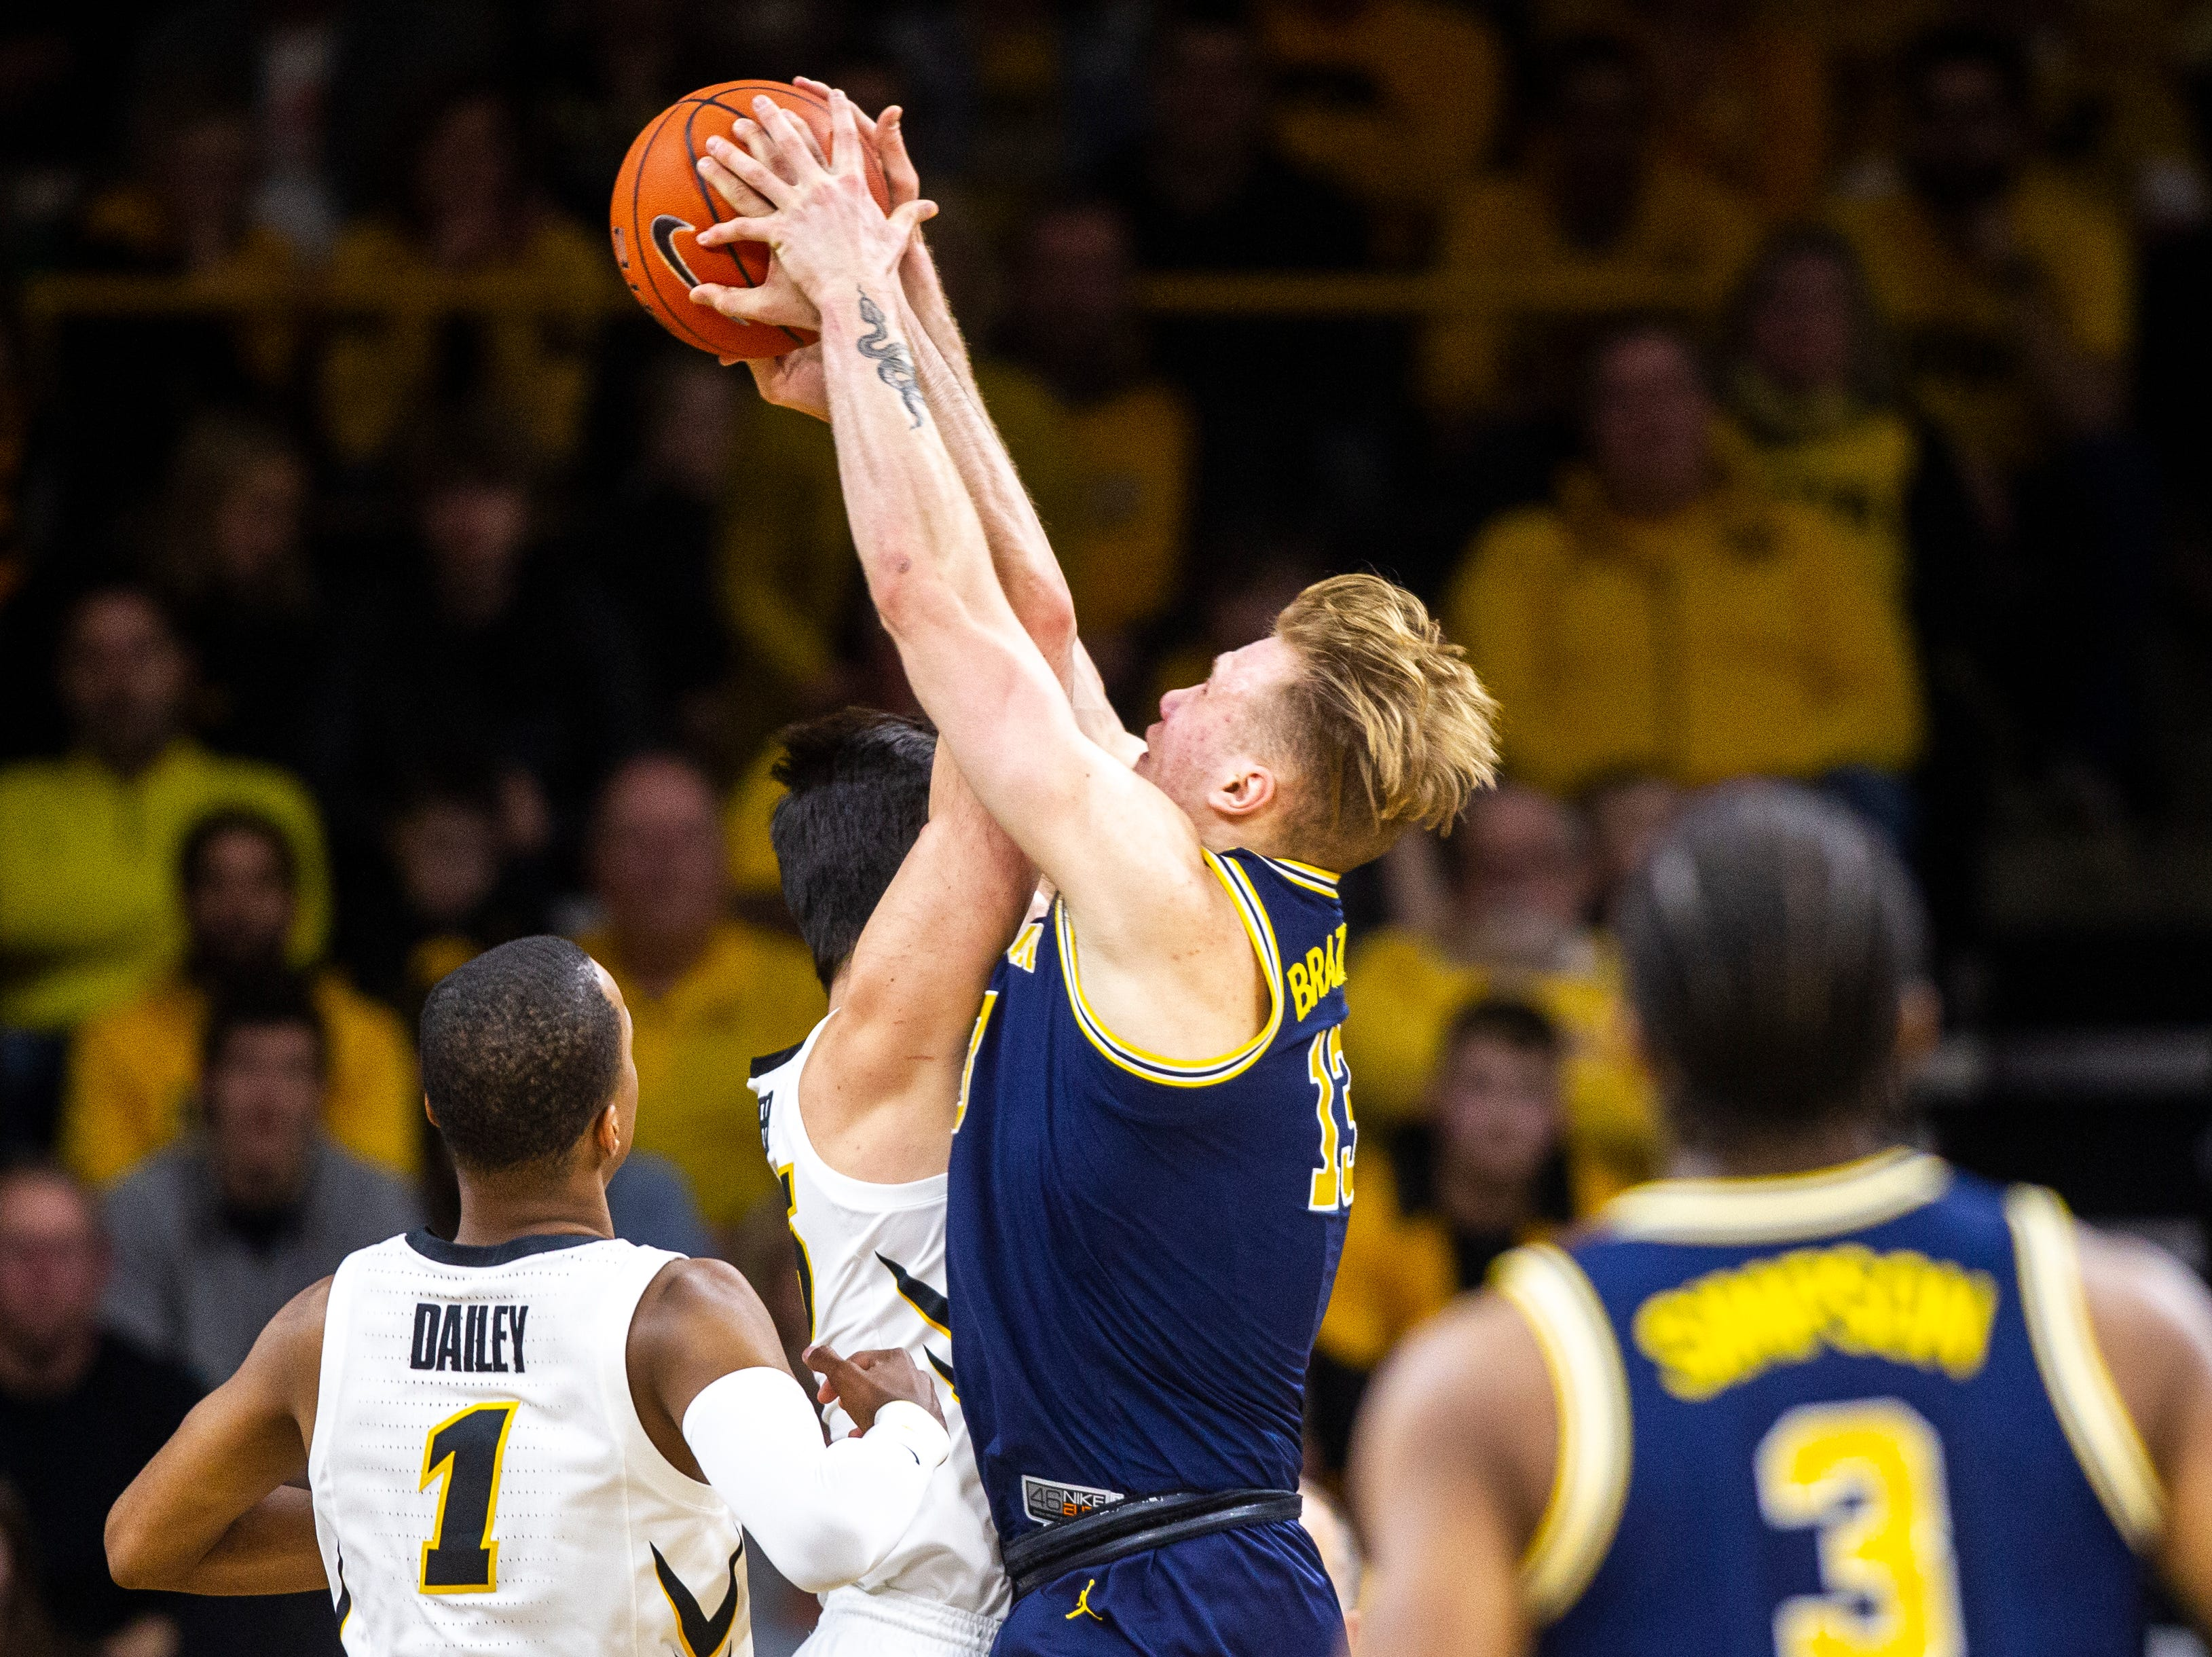 Michigan forward Ignas Brazdeikis (13) fouls Iowa forward Ryan Kriener while going for a rebound during a NCAA Big Ten Conference men's basketball game on Friday, Feb. 1, 2019, at Carver-Hawkeye Arena in Iowa City, Iowa.